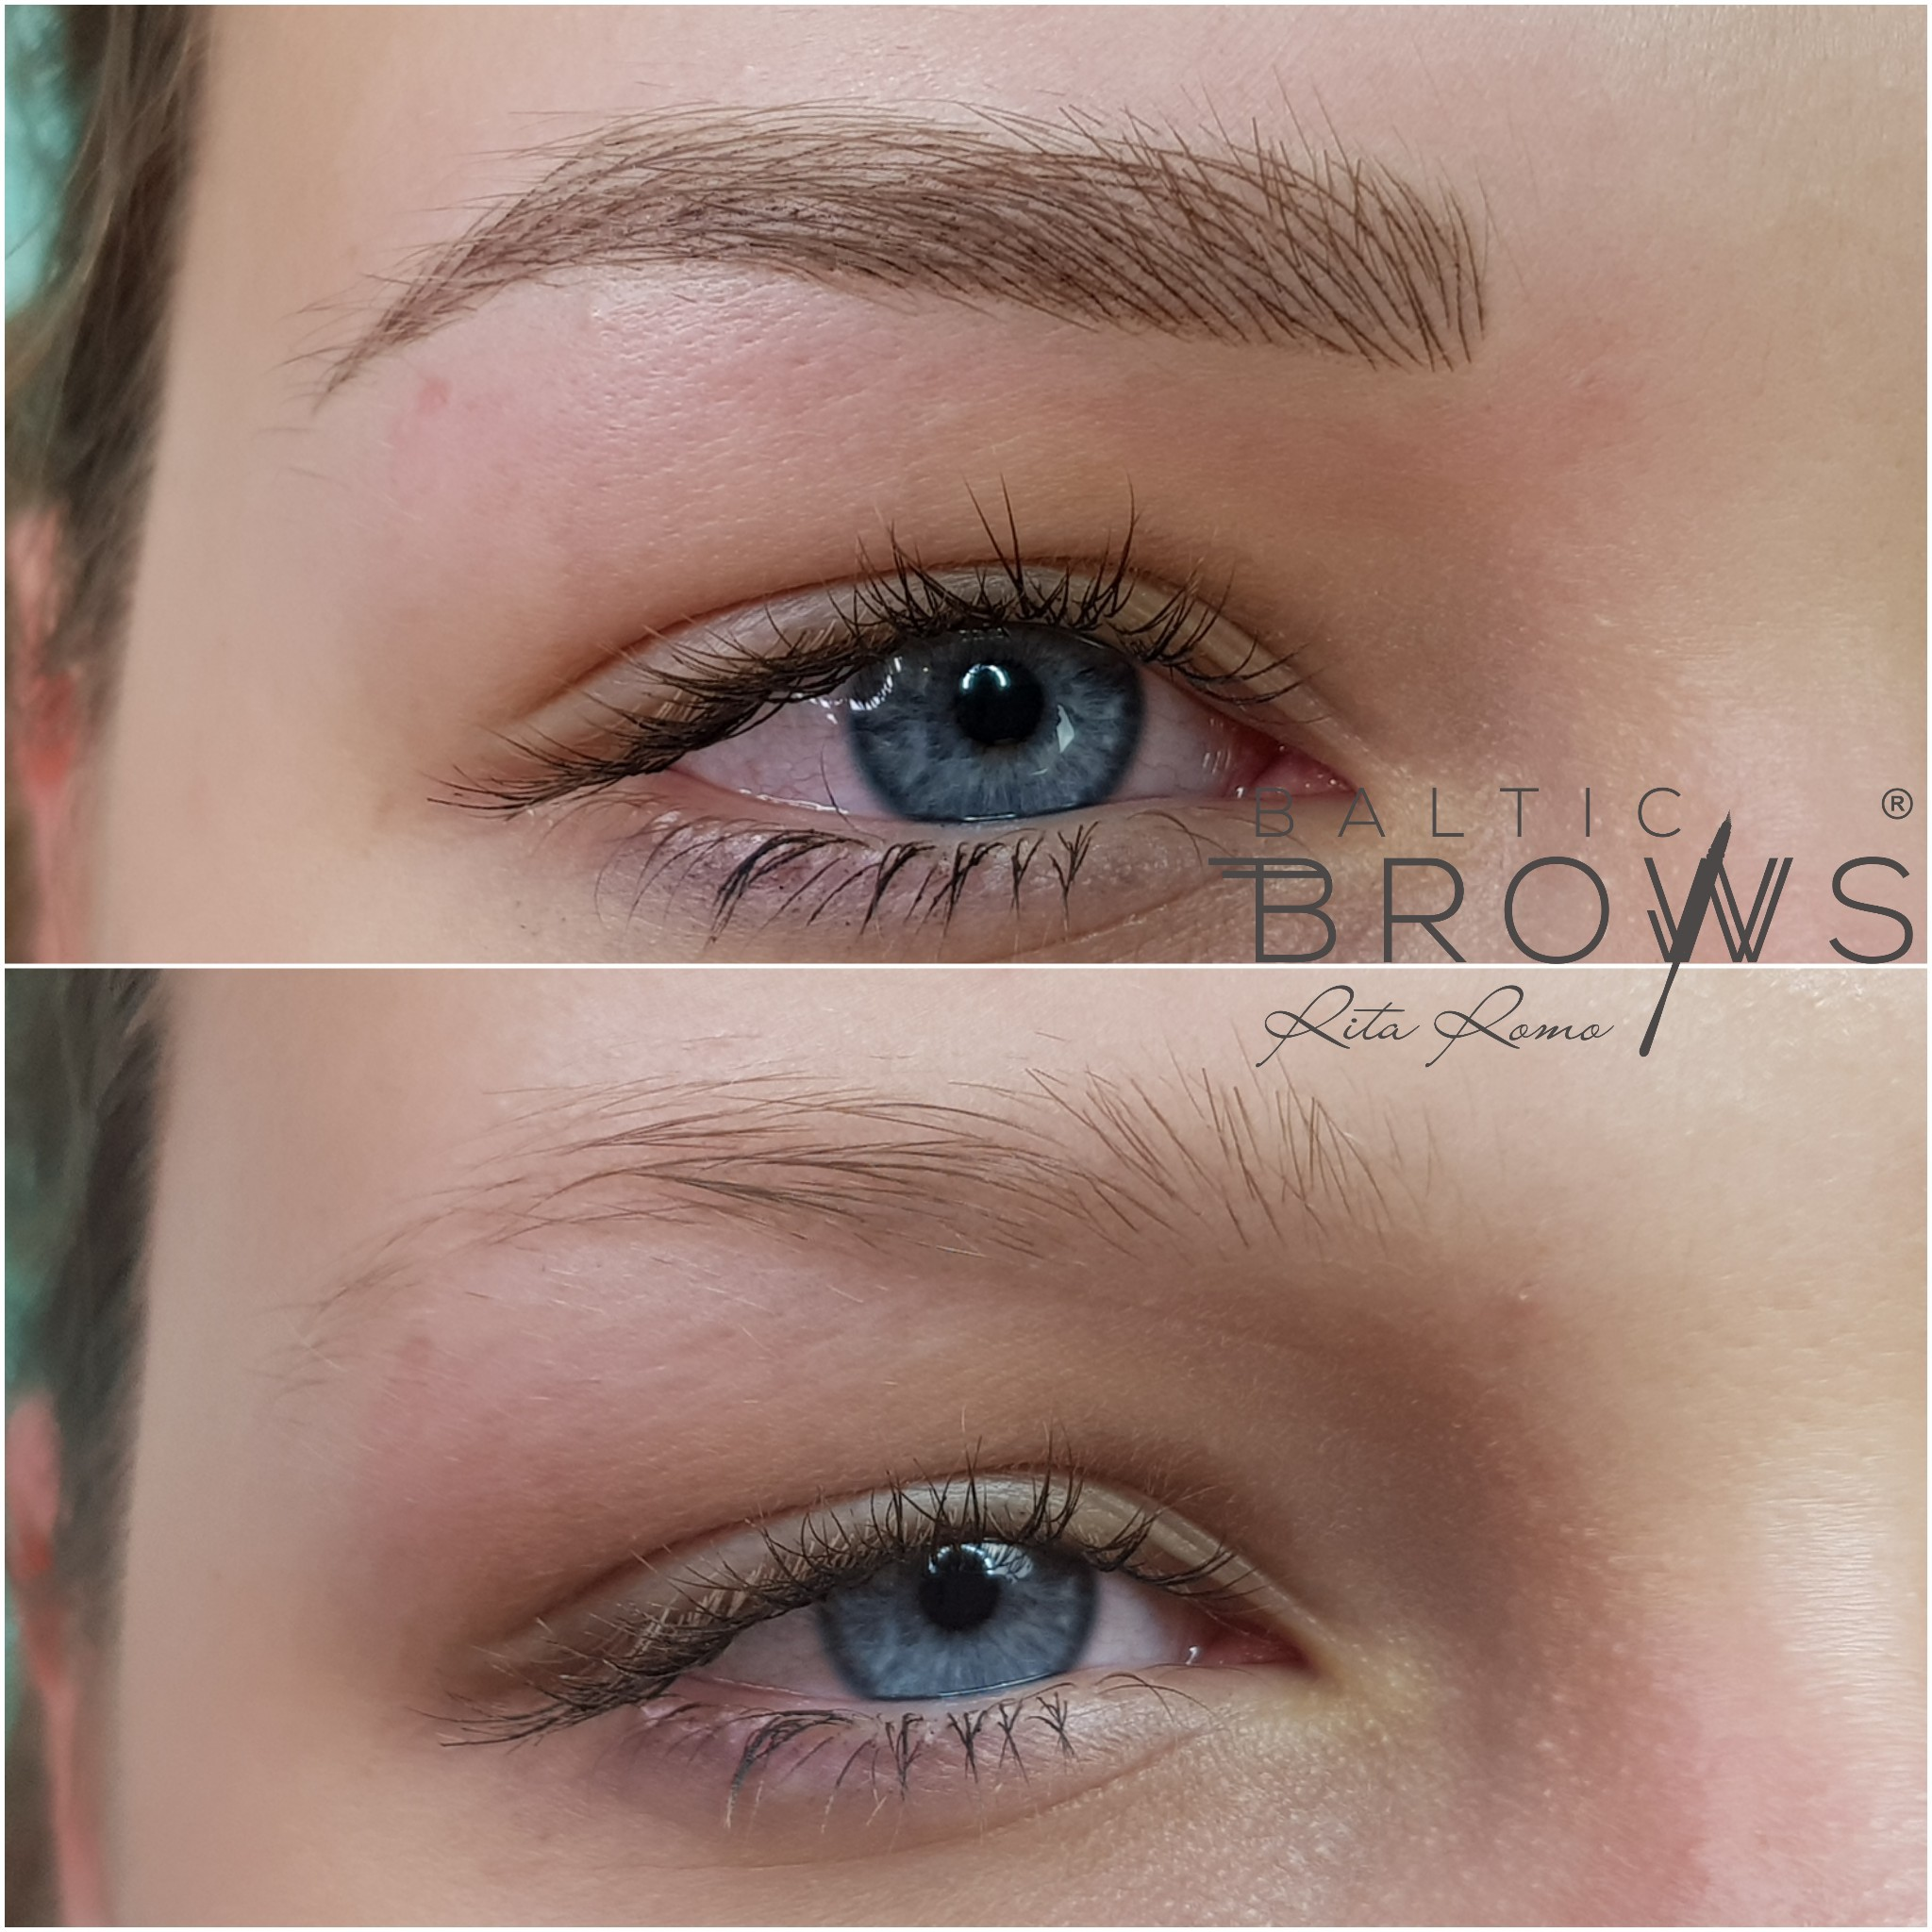 Microblading 6d Brows Balticbrows